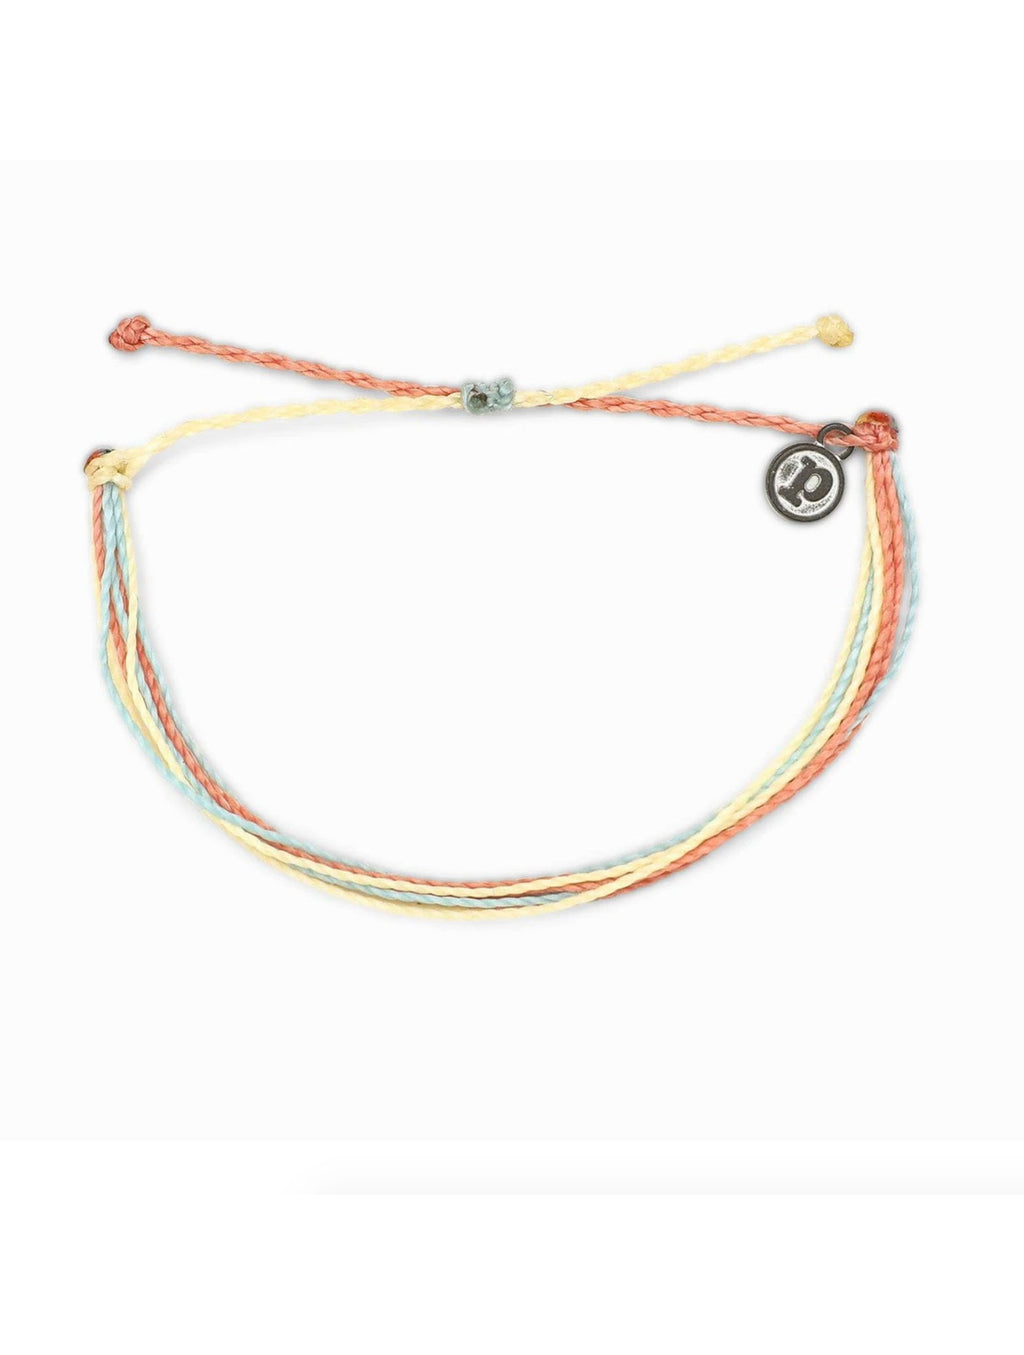 Pura Vida Original Bracelet in Beach Life